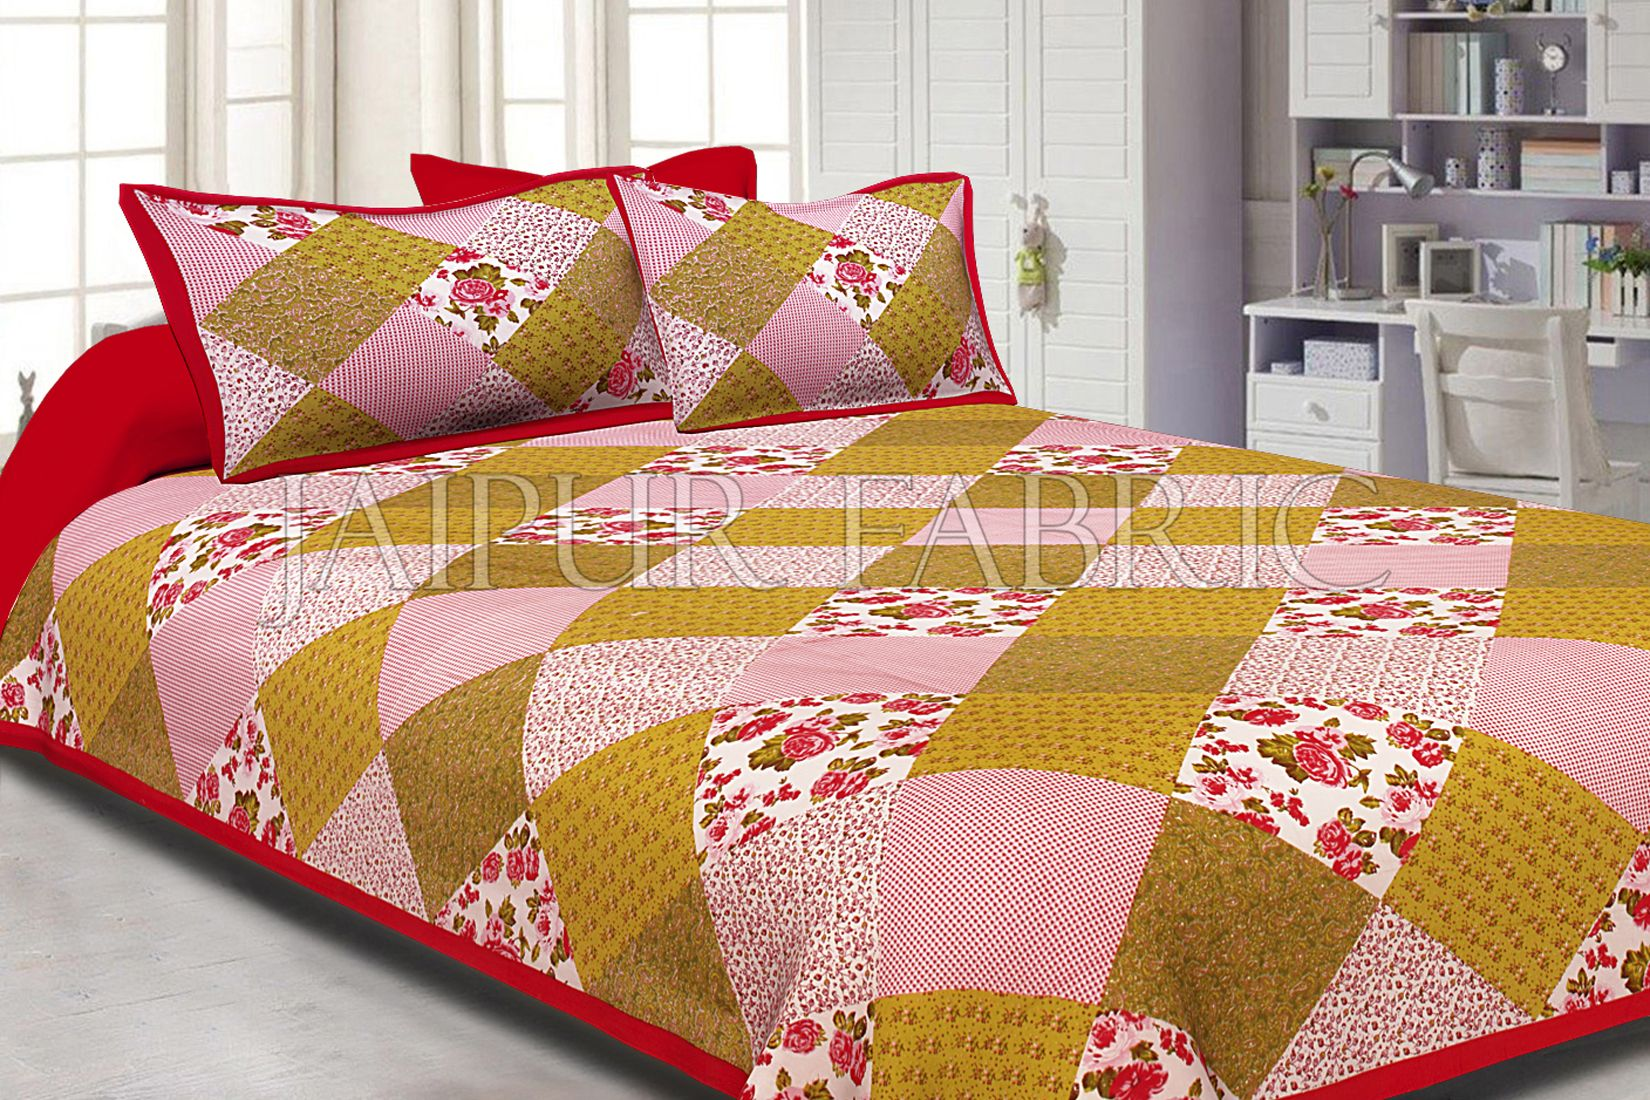 Maron Border Multicolor Base Flower Screen Print Cotton Double Bed Sheet